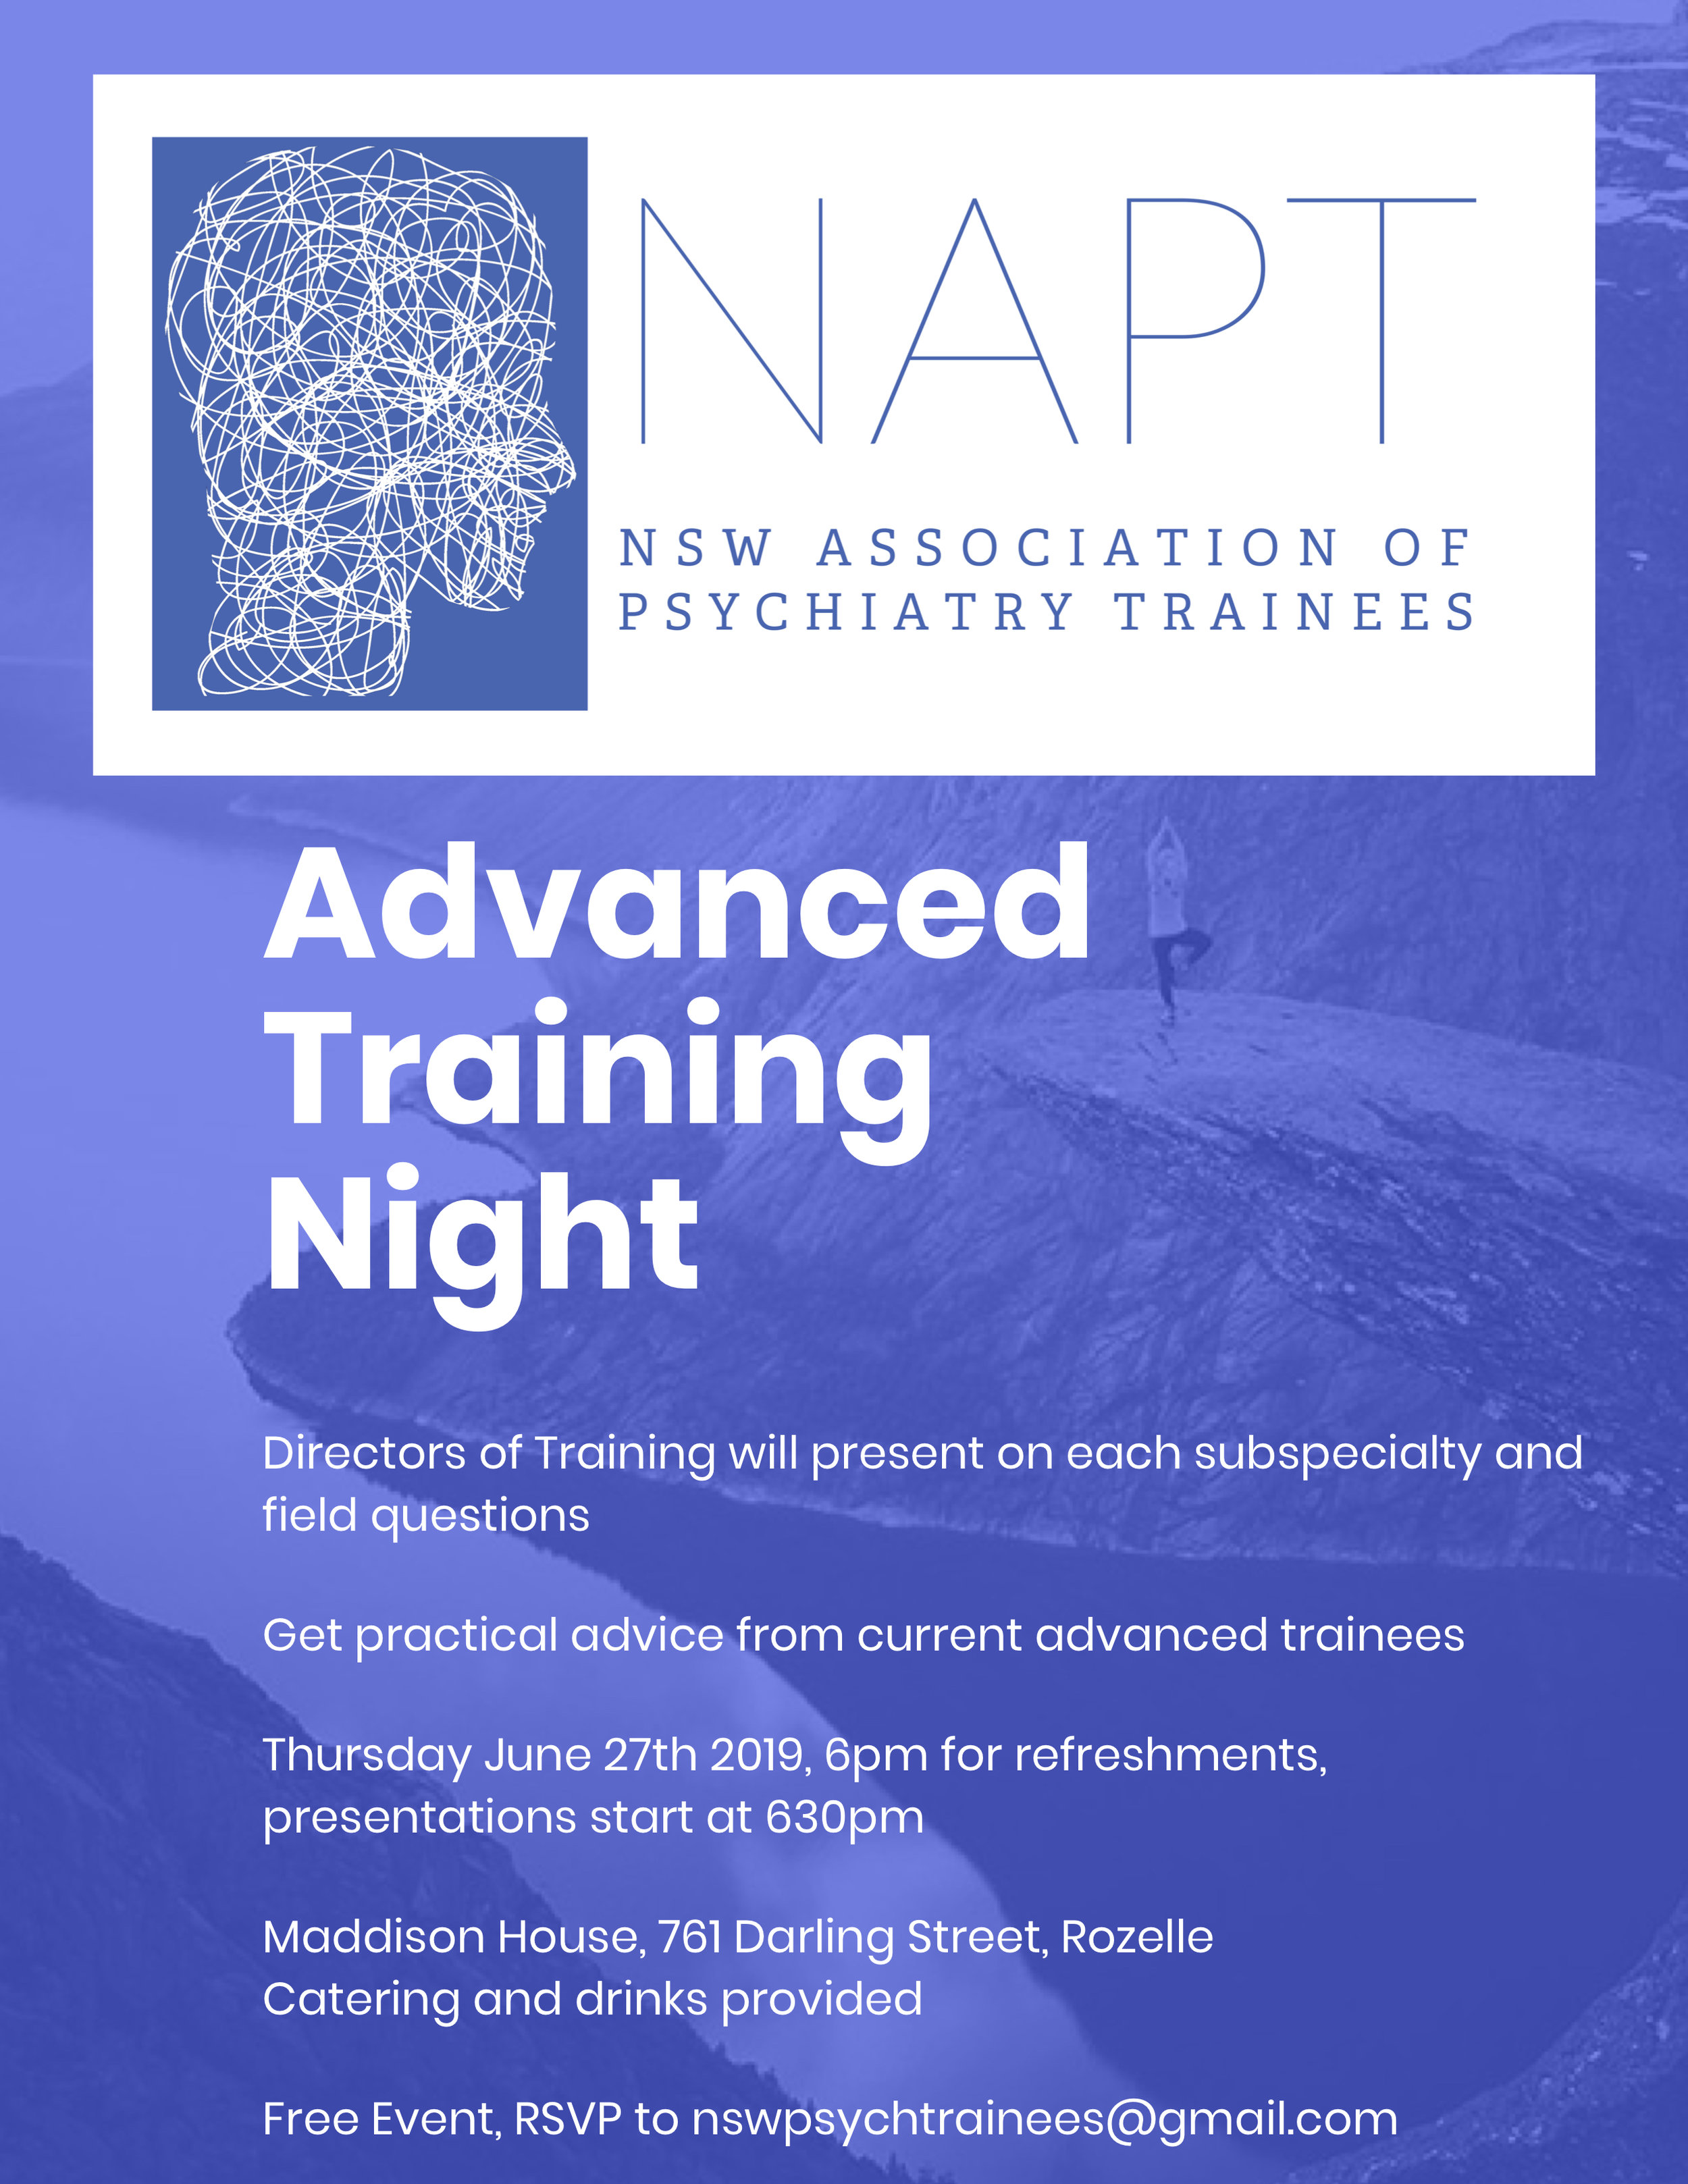 2019 Advanced Training Night - Directors of Training will present on each subspecialty and field questions;Get practical advice from current advanced trainees.Come along on Thursday June 27th 2019;Maddison House, 761 Darling Street, Rozelle NSW 2039;6pm for refreshments, presentations start at 6:30pm;Catering and drinks provided.This event is free for NAPT Members, RSVP to NSWPsychTrainees@gmail.com.Join NAPT here.